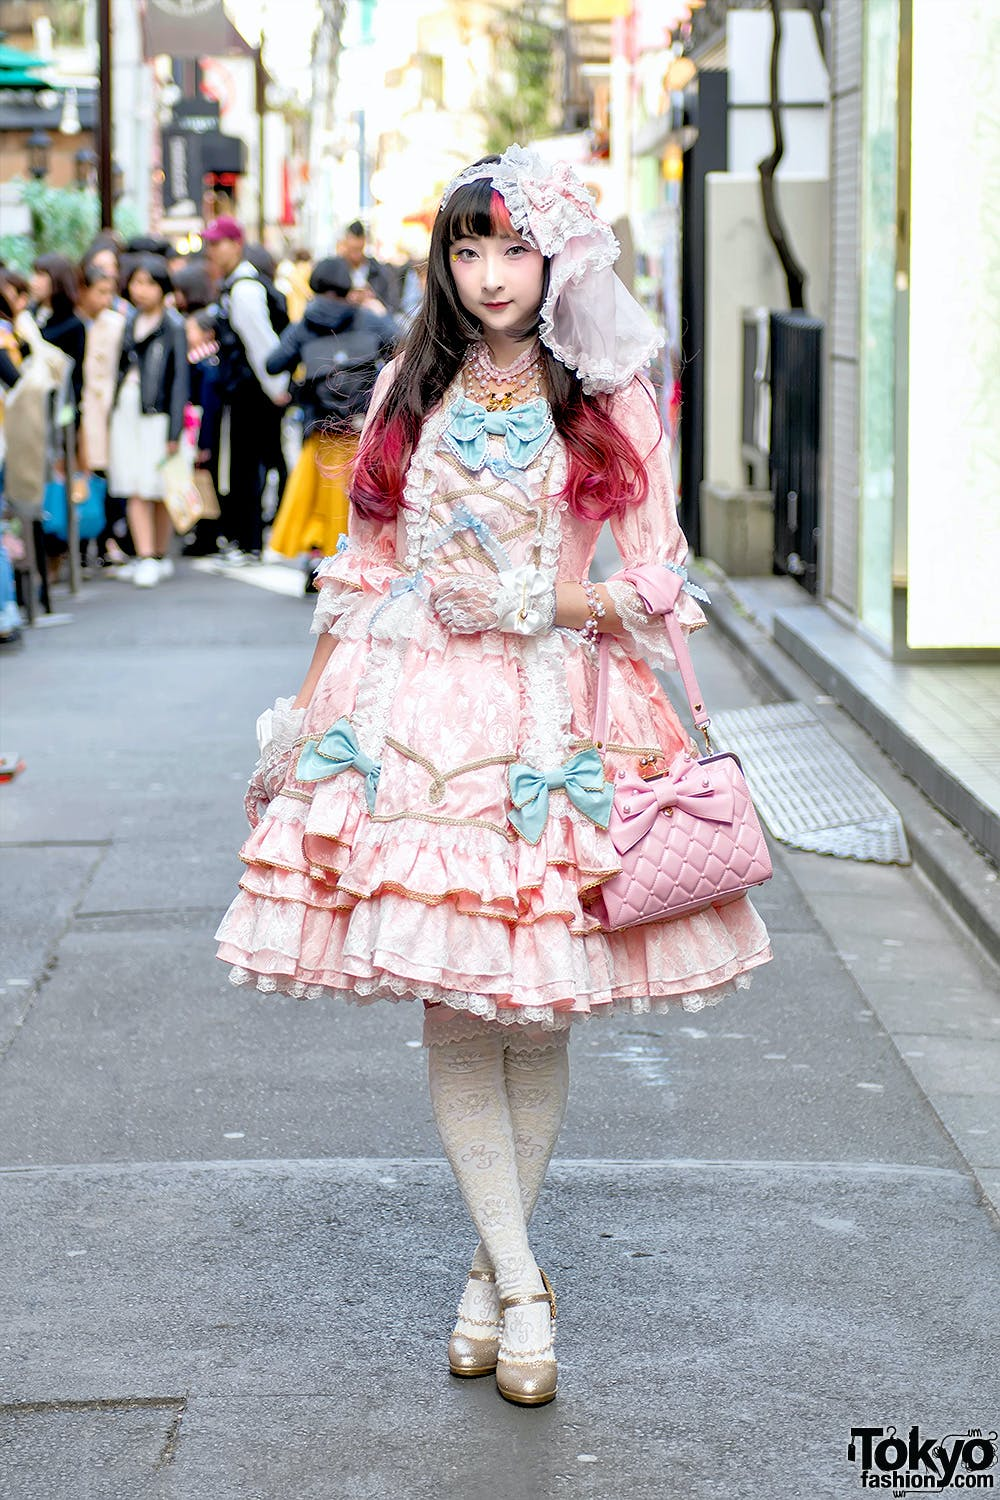 LOLITA AESTHETIC CAN BE BOTH EUROPEAN AND JAPANESE